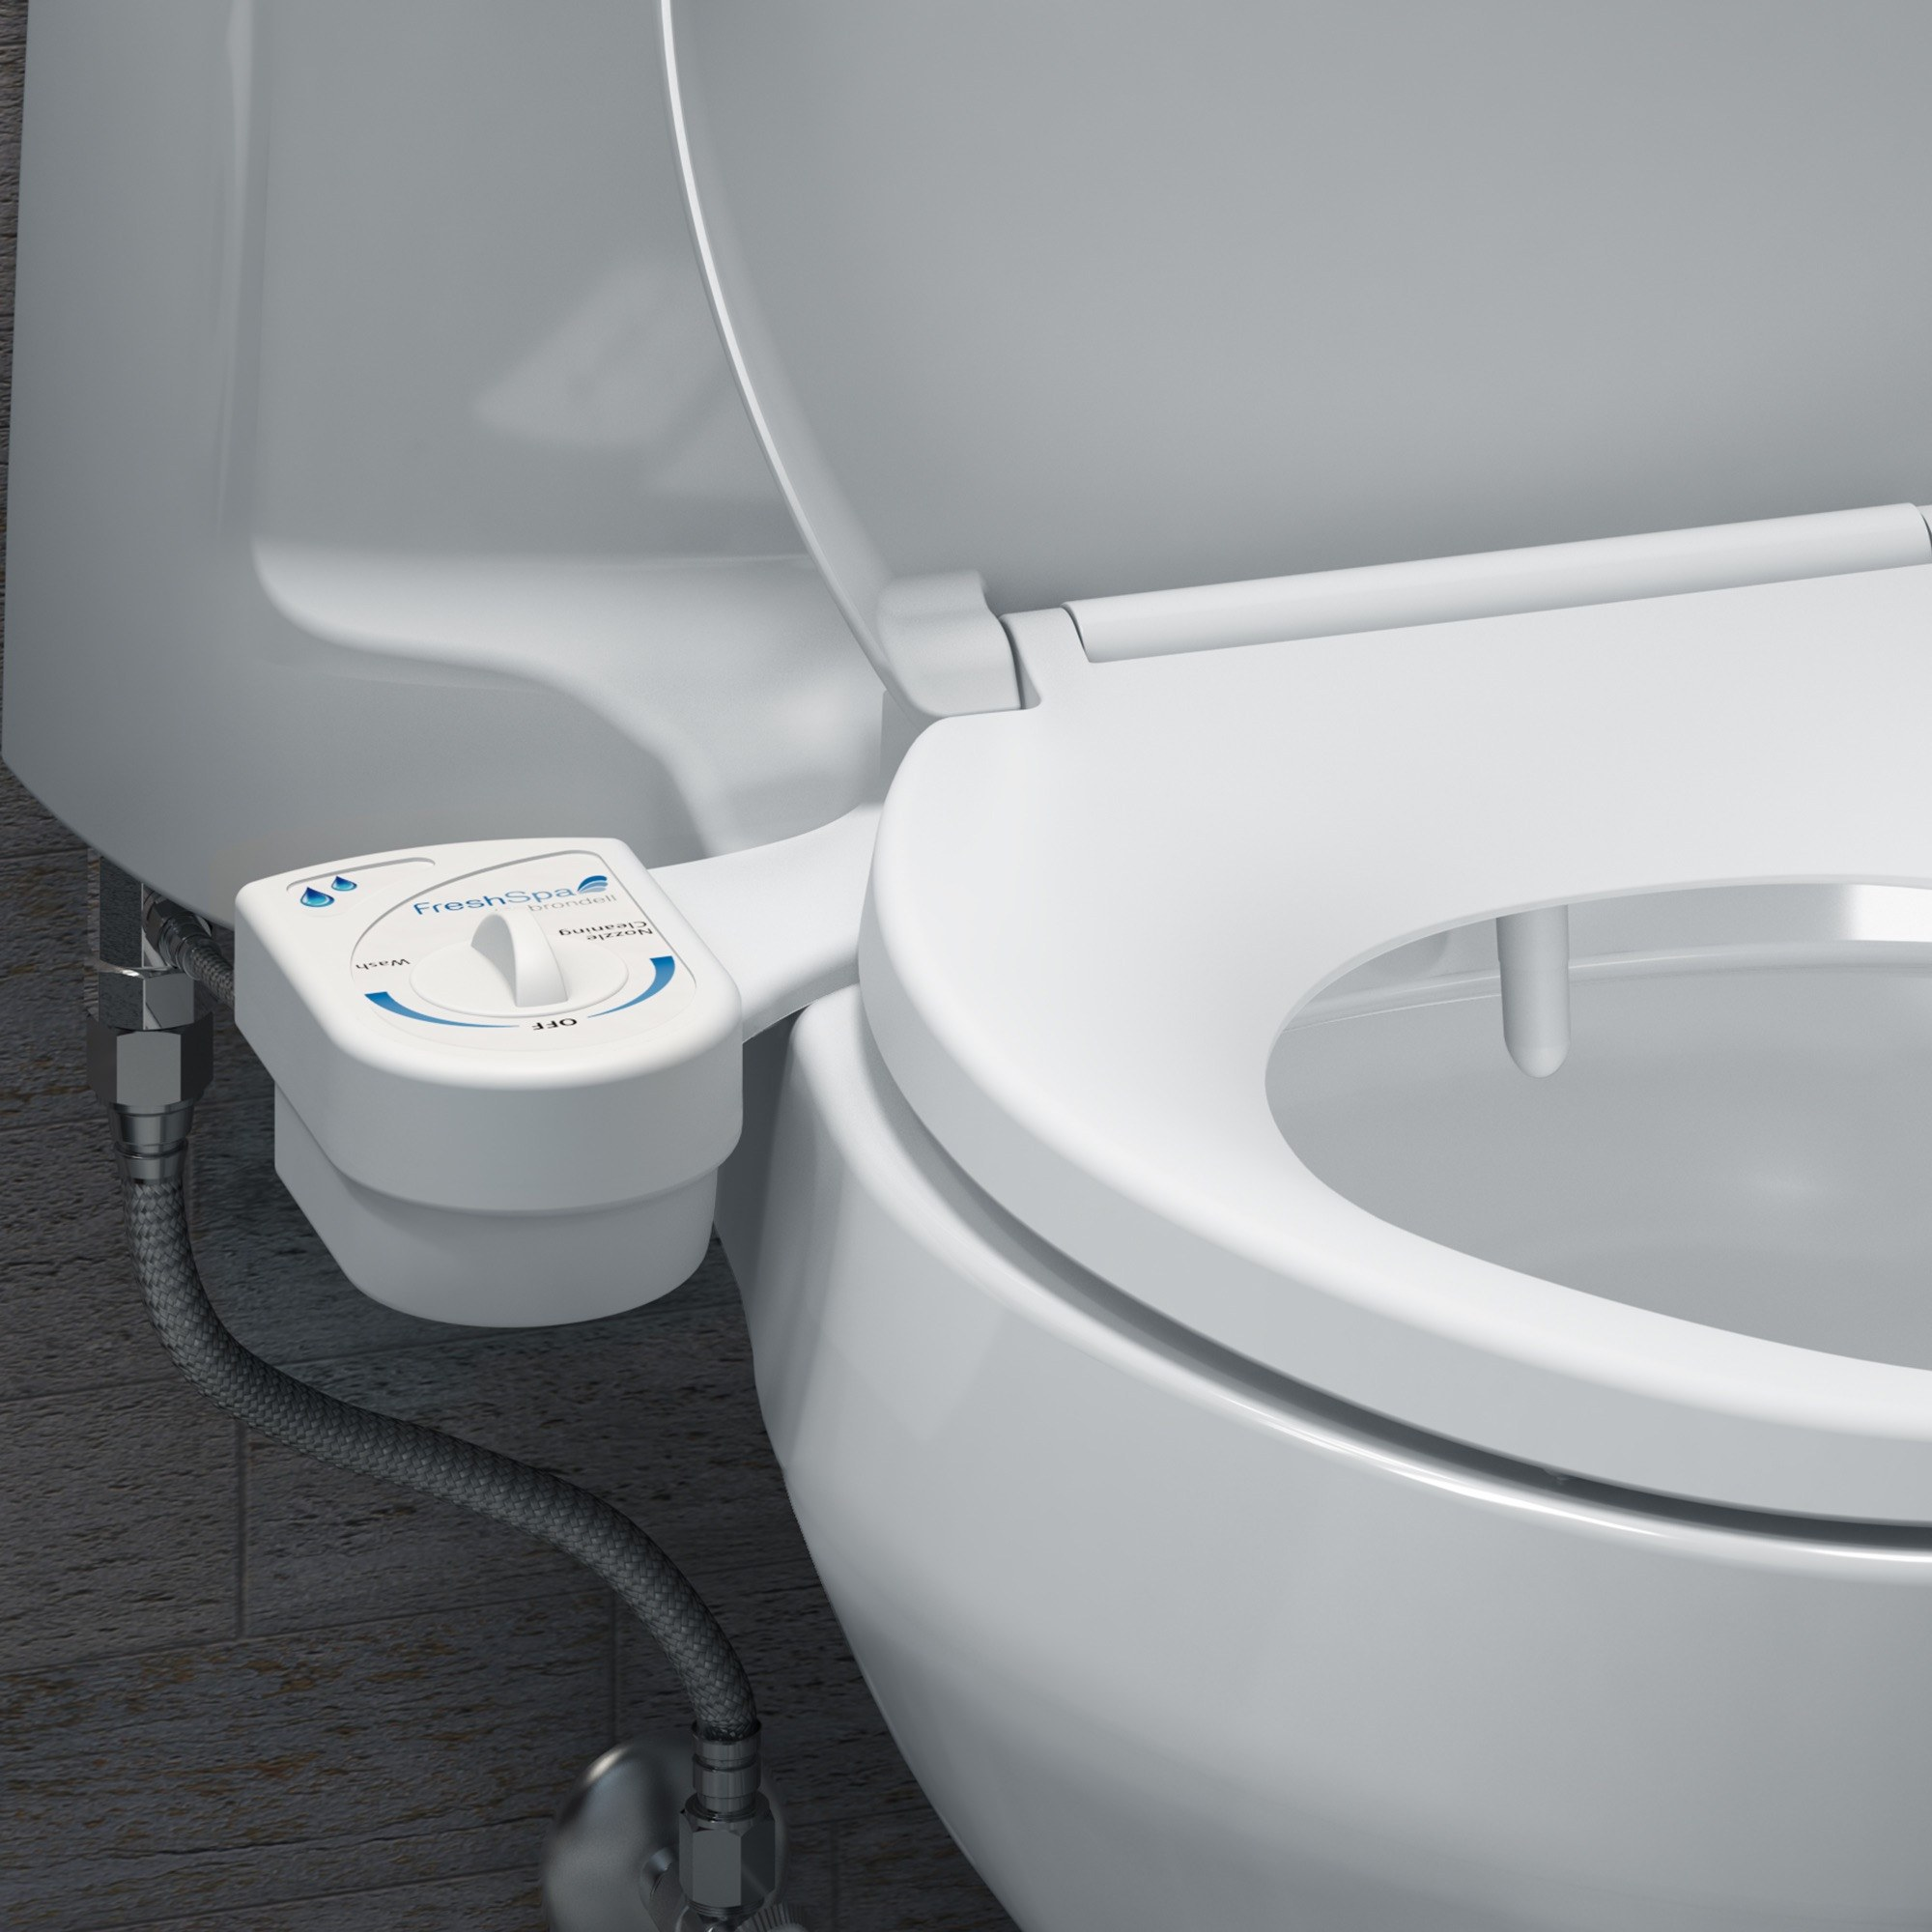 FreshSpa Dual Temperature Bidet Attachment